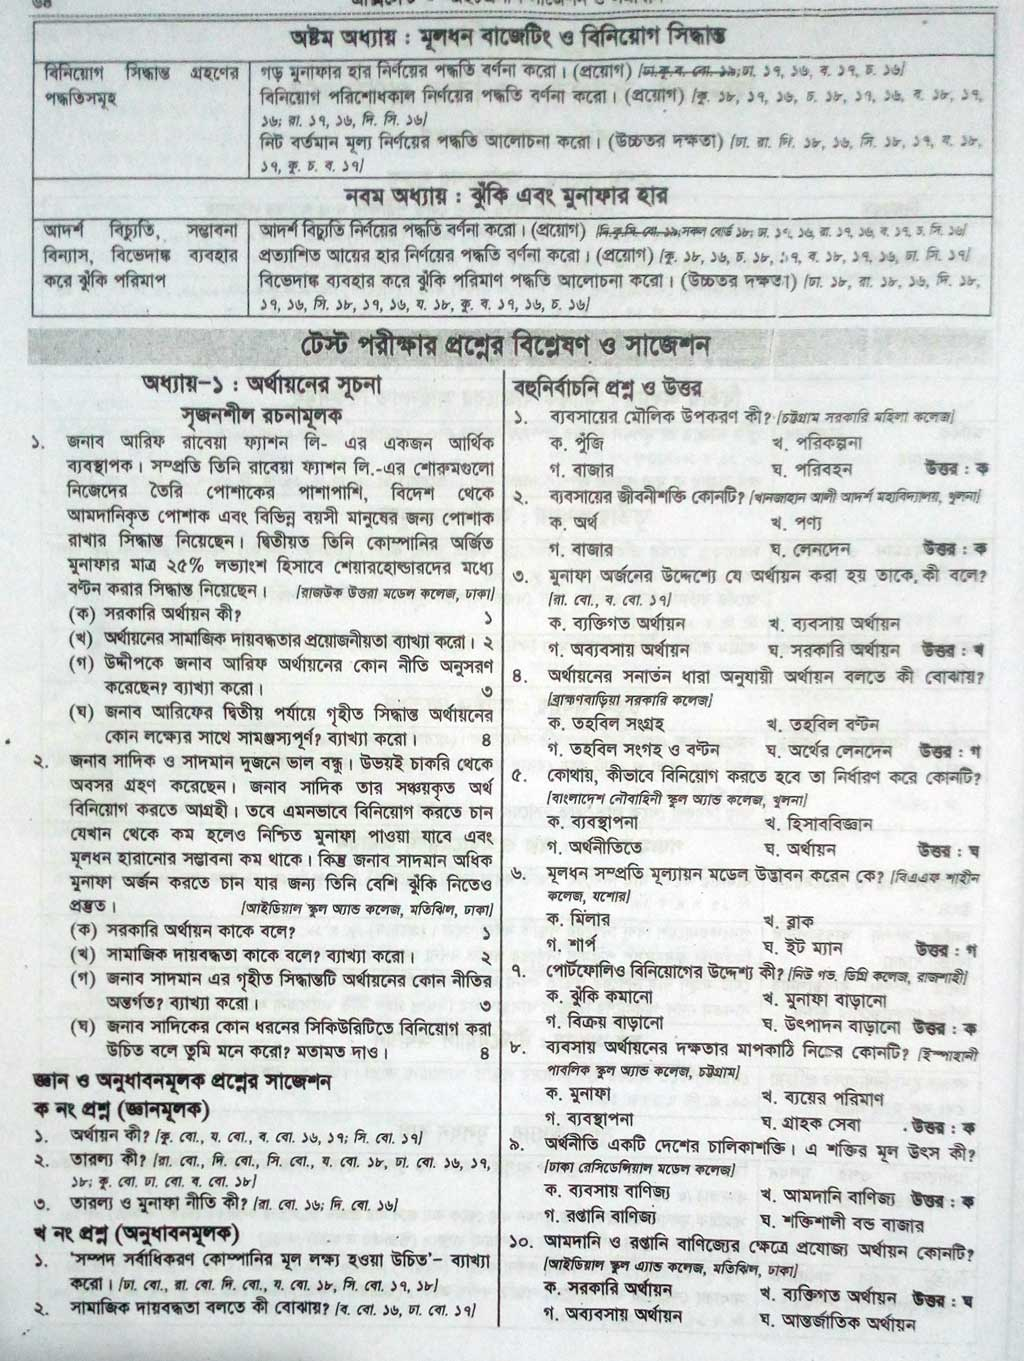 HSC Finance, Banking & Bima 1st Paper Suggestion